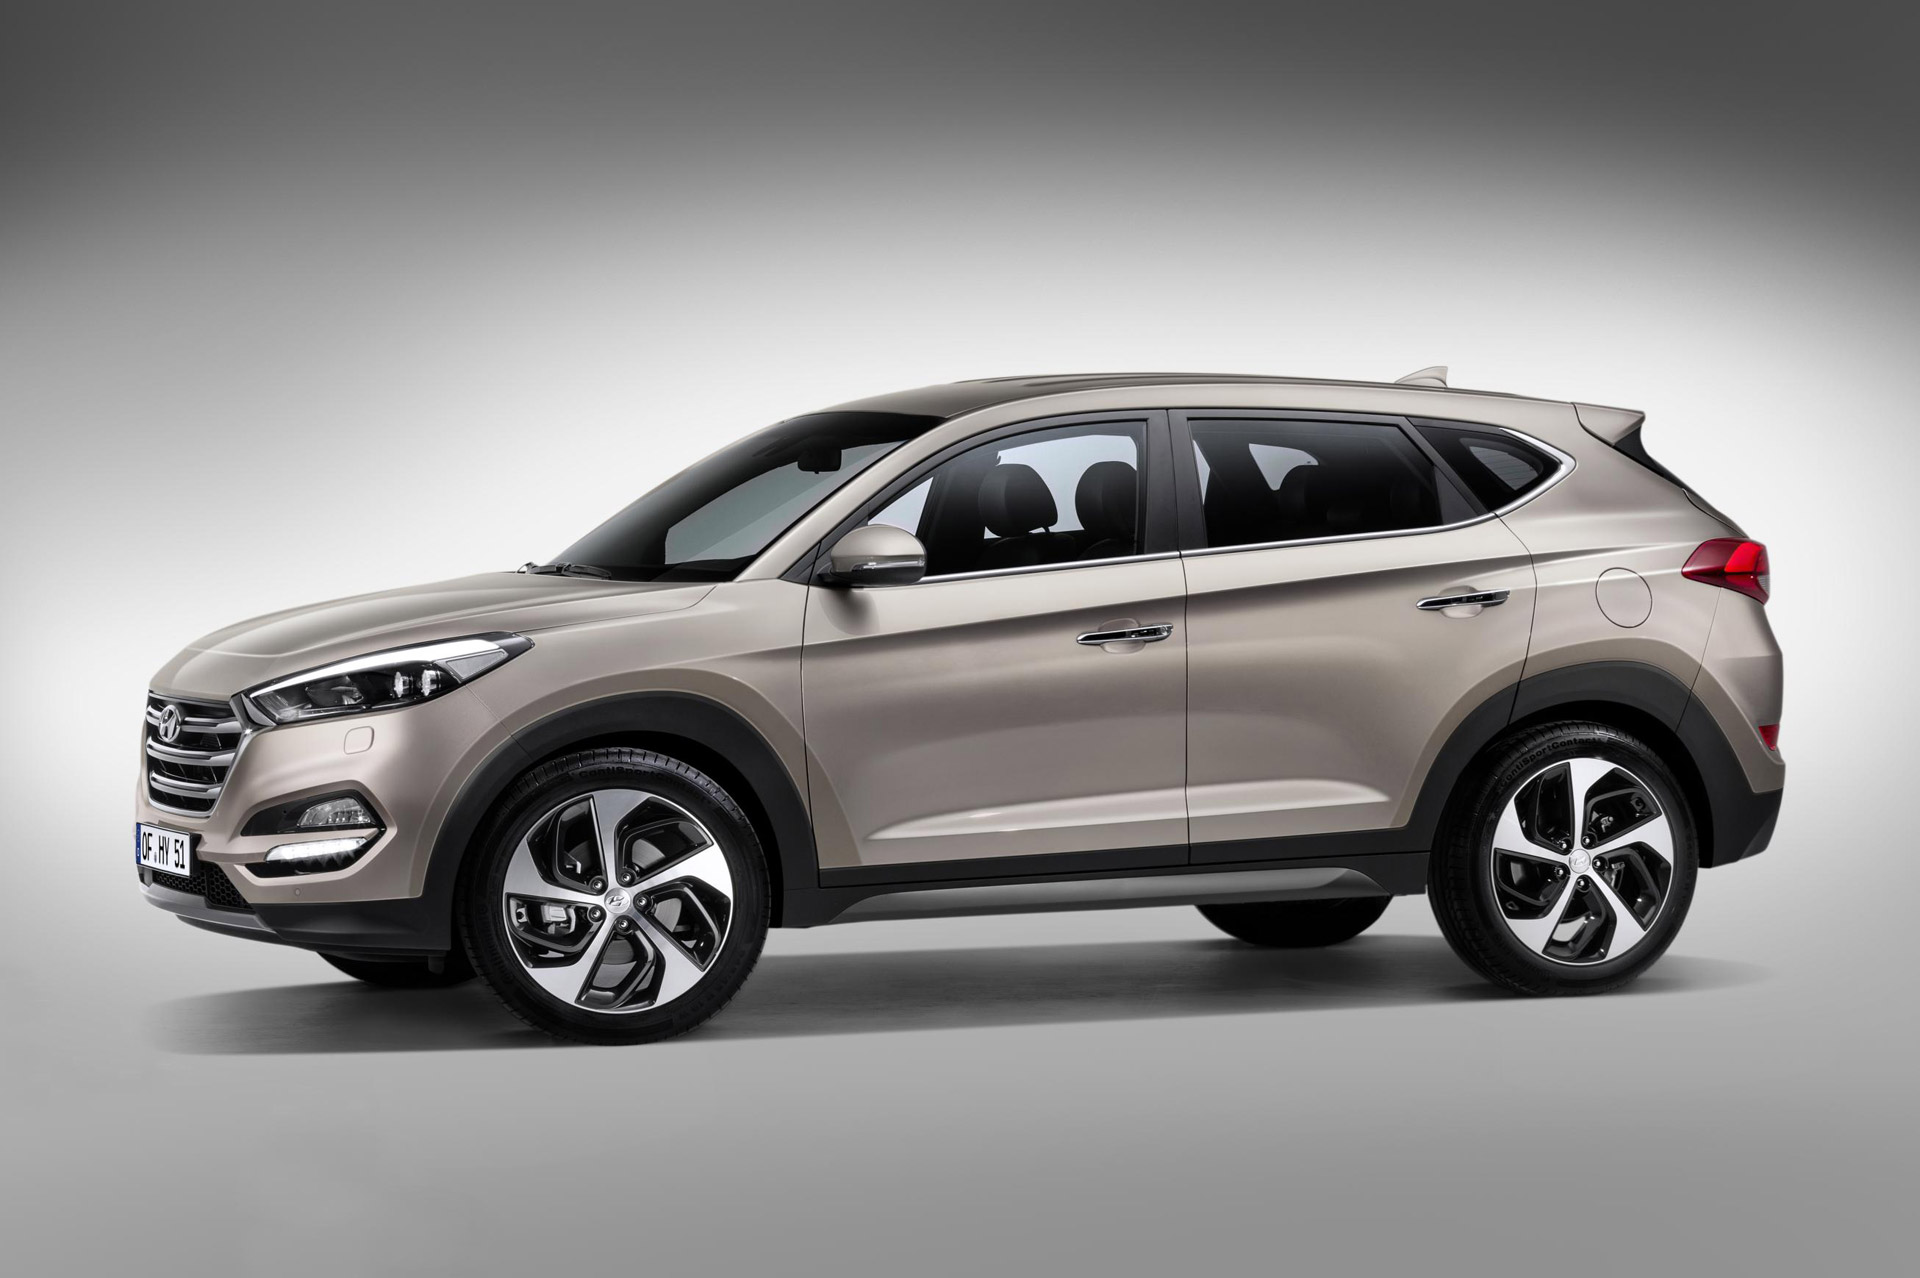 2016 Hyundai Tucson Safety Review And Crash Test Ratings